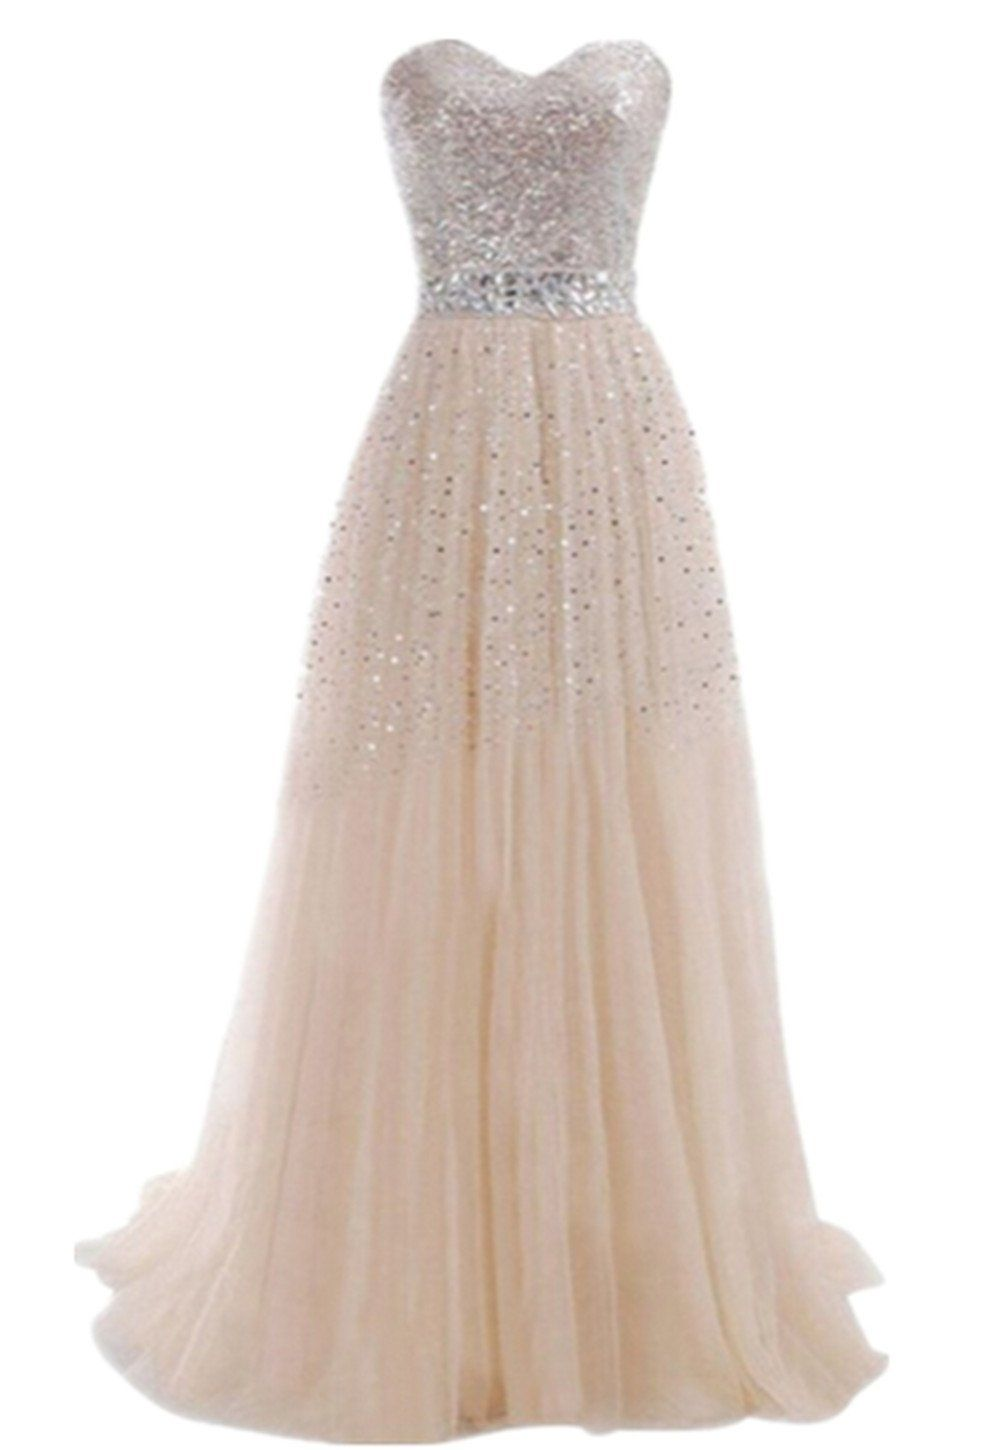 3f689f9ca763 Sequins Long Formal Prom Dress Cocktail Party Ball Gown Evening Bridesmaid  Dress at Amazon Women's Clothing store: